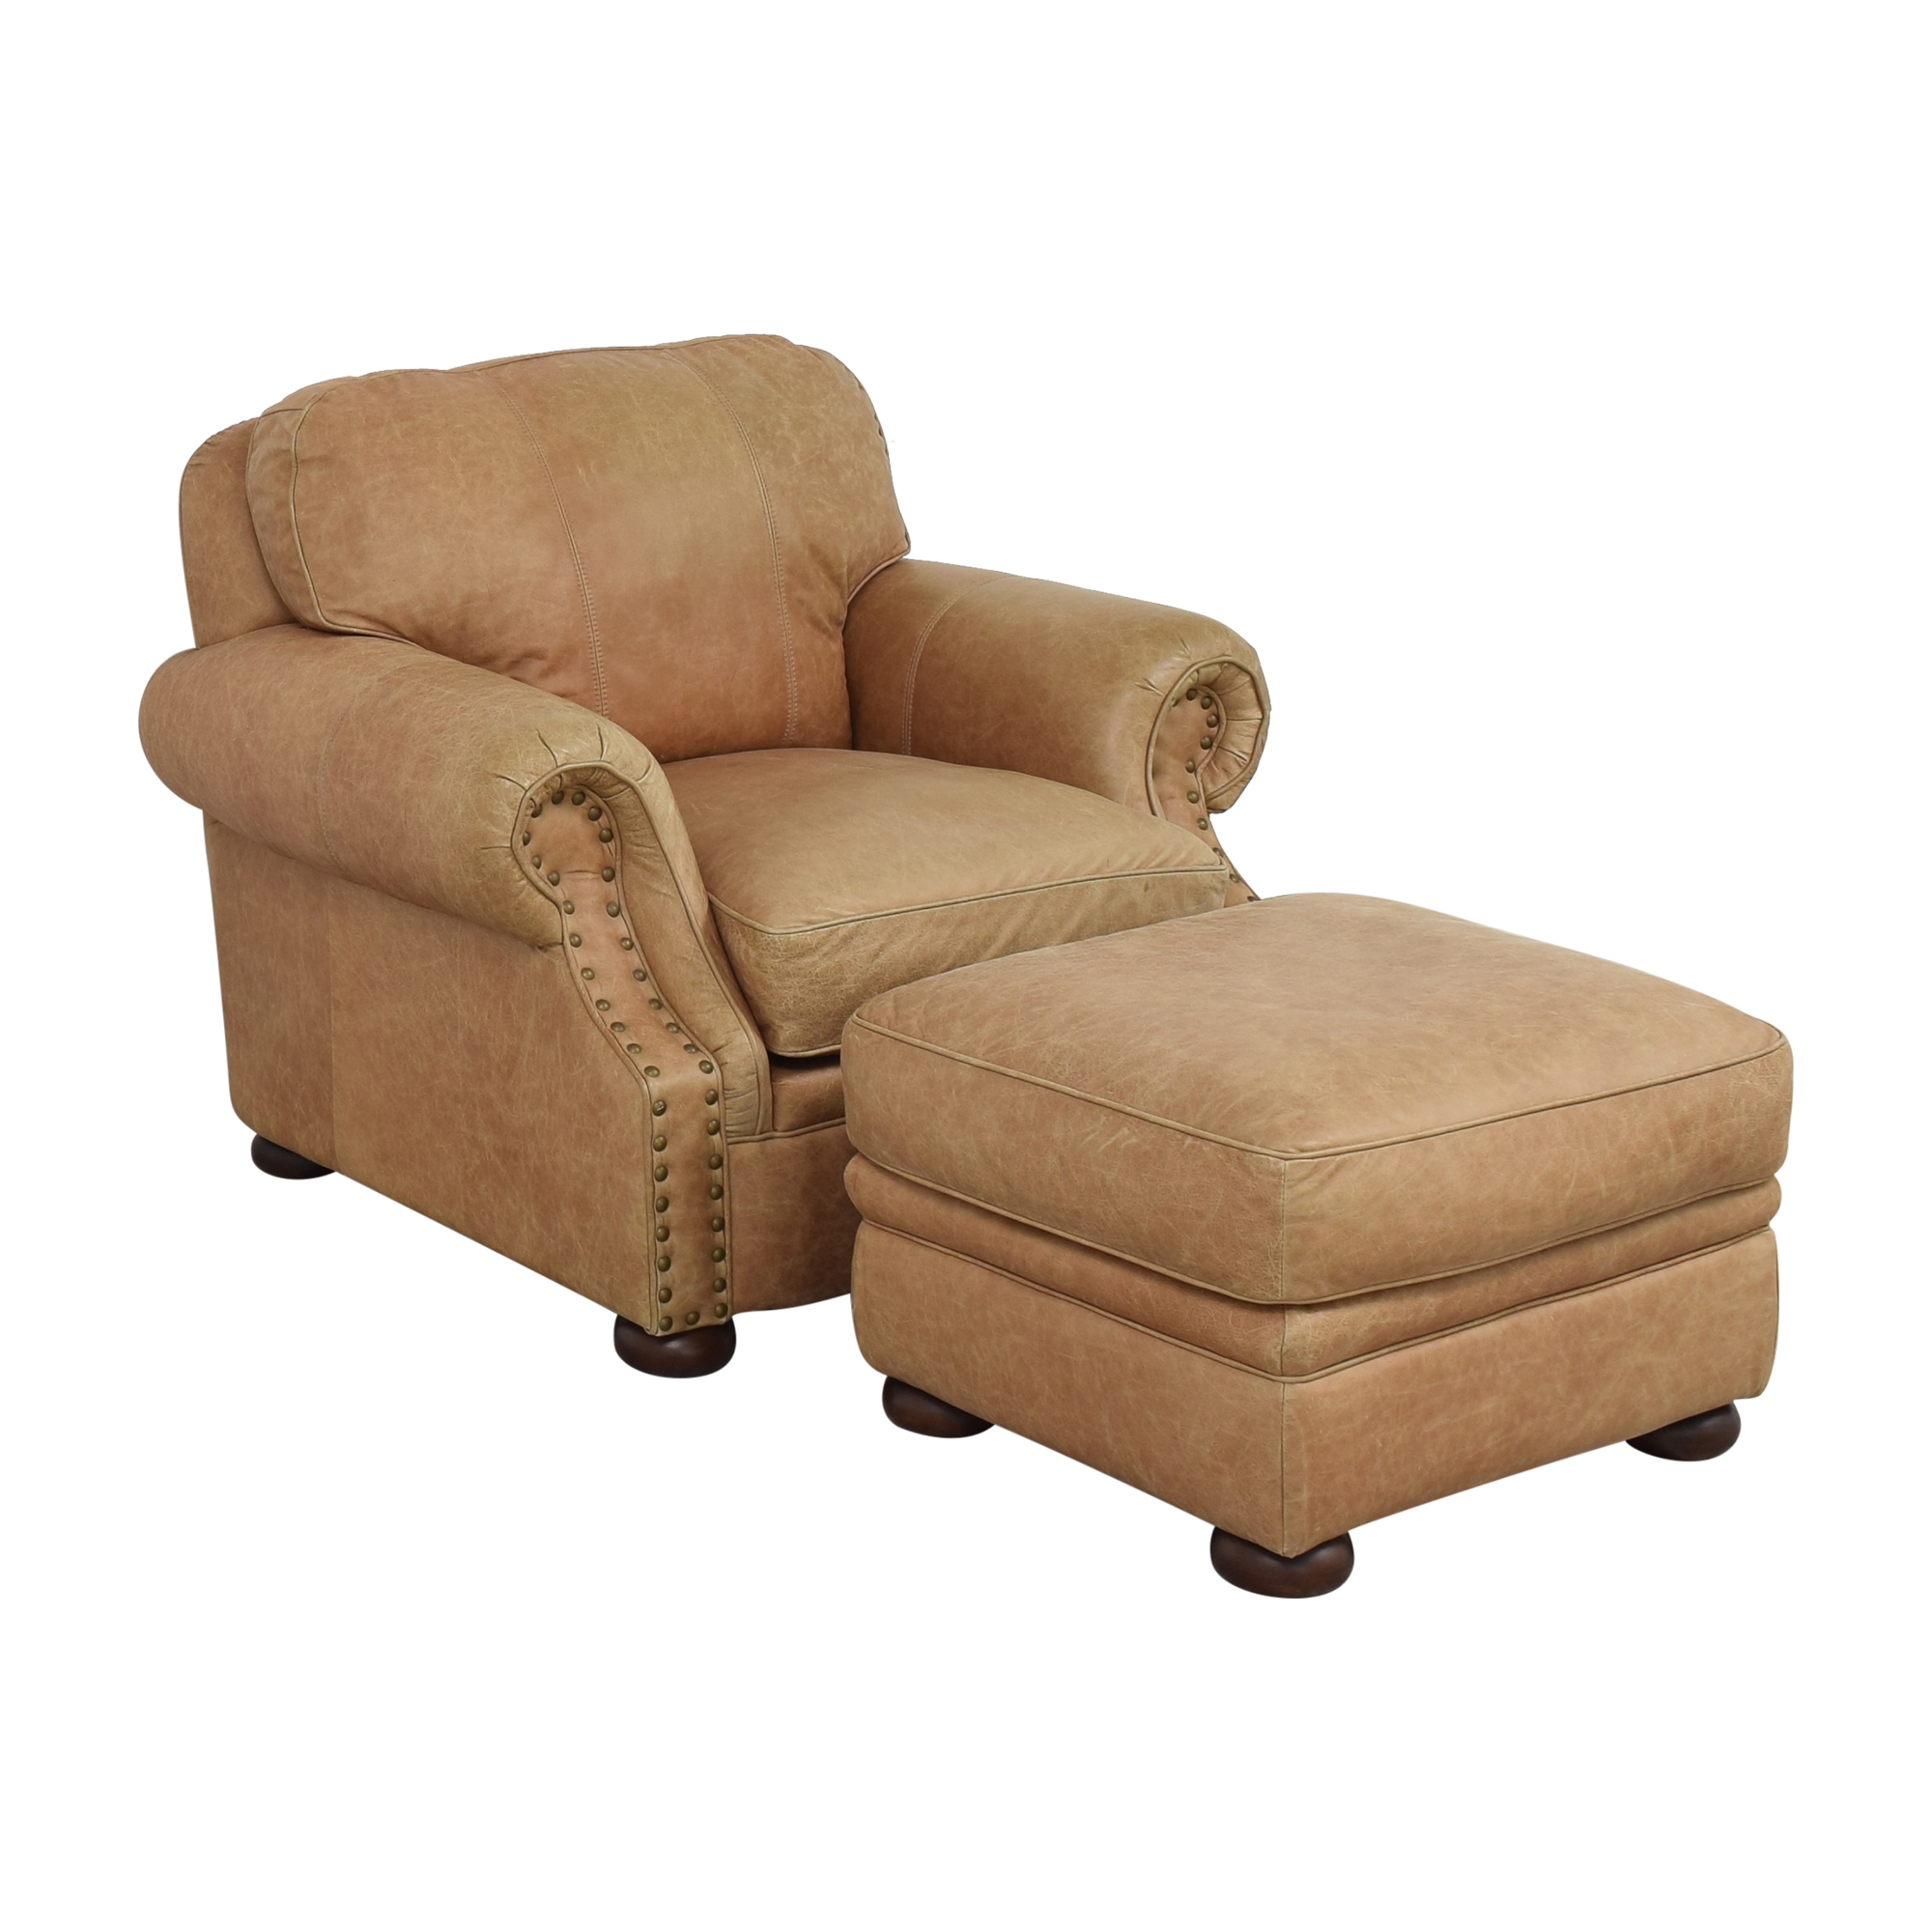 Ethan Allen Roll Arm Chair with Ottoman / Chairs